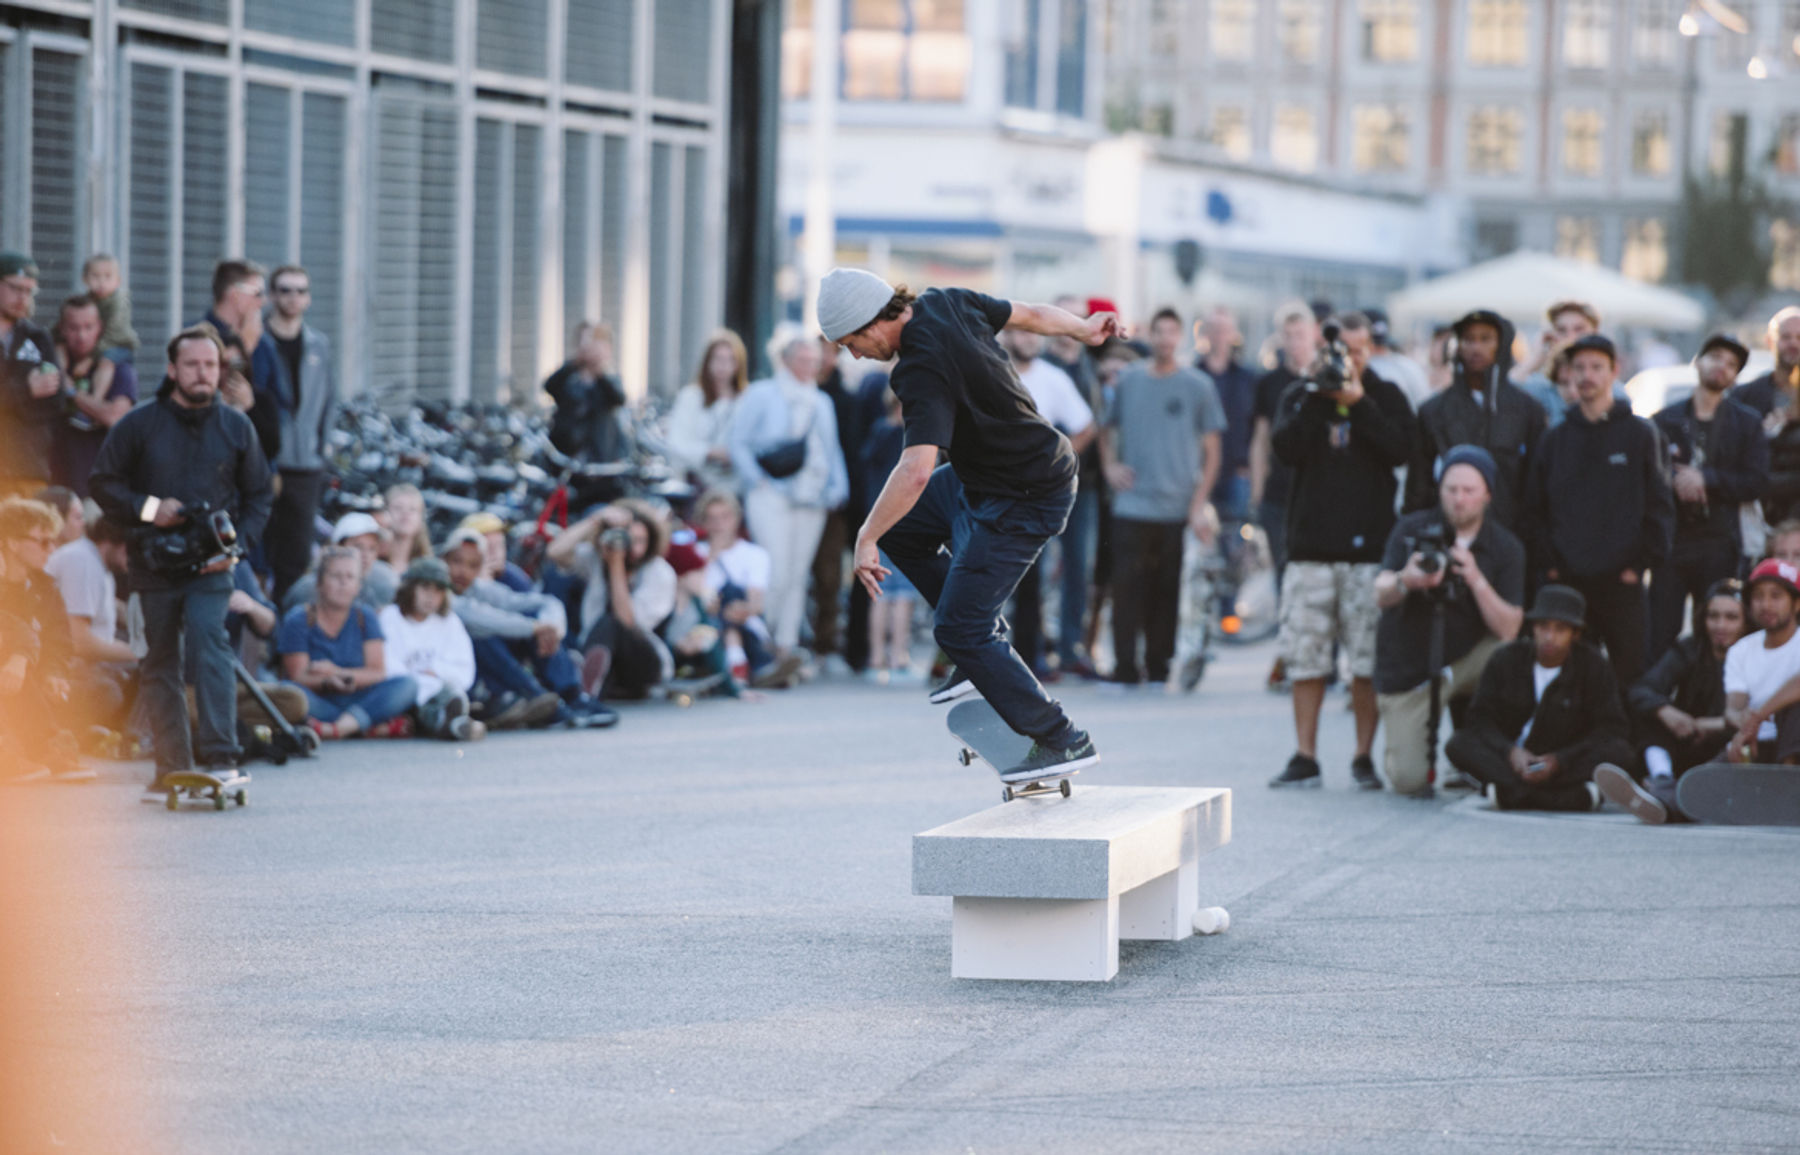 _IHC4207e-Carlos-Ribeiro-Switch-Flip-Switch-5-0-Nike-SB-Copenhagen-Open-Ledges-Meat-Packing-District-Day-2-July-2015-Photographer-Maksim-Kalanep